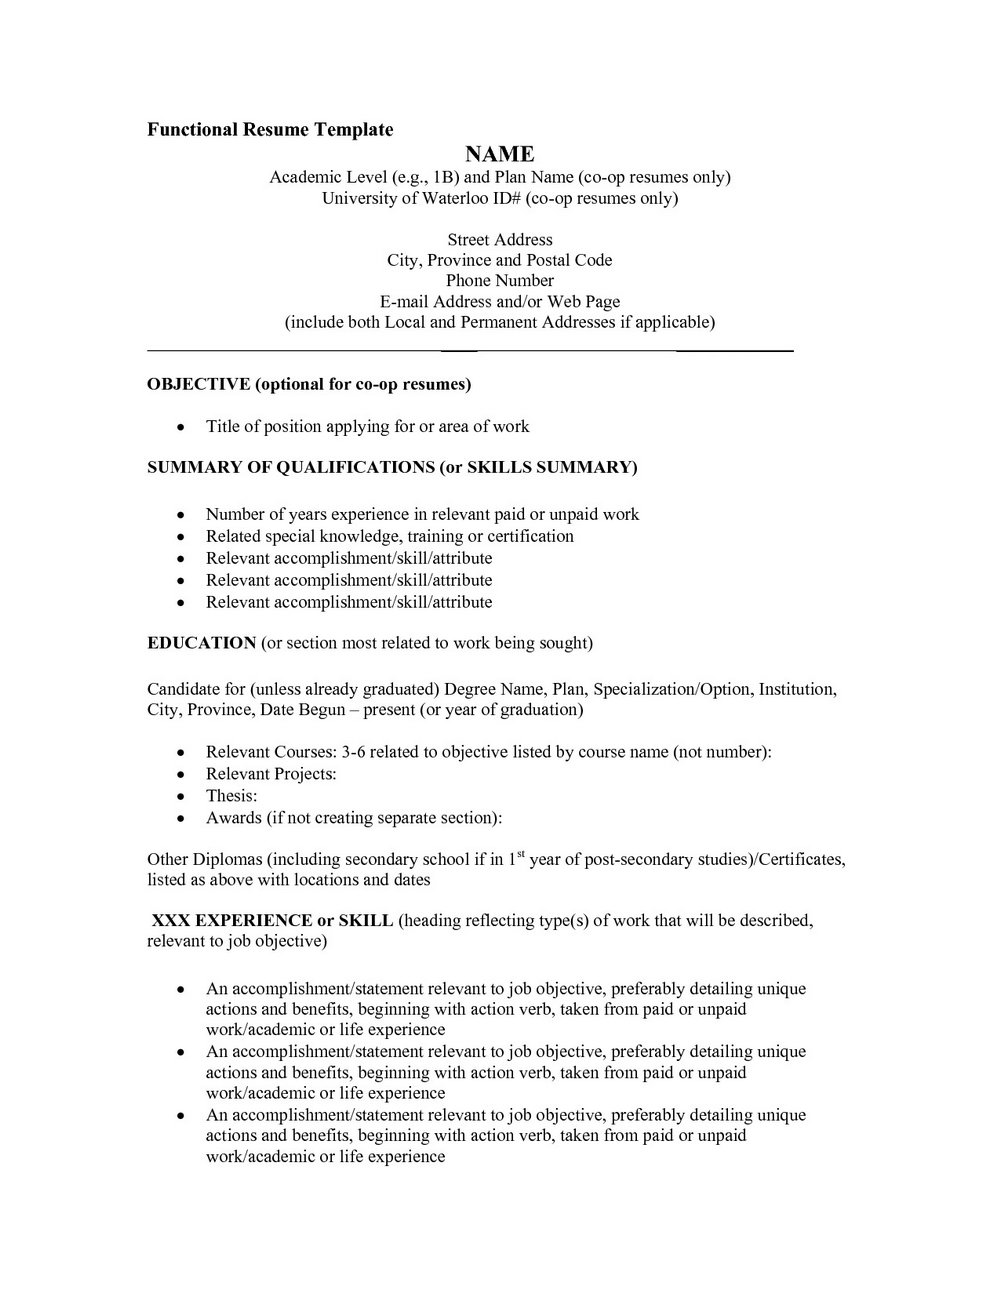 Free Functional Resume Templates 2017